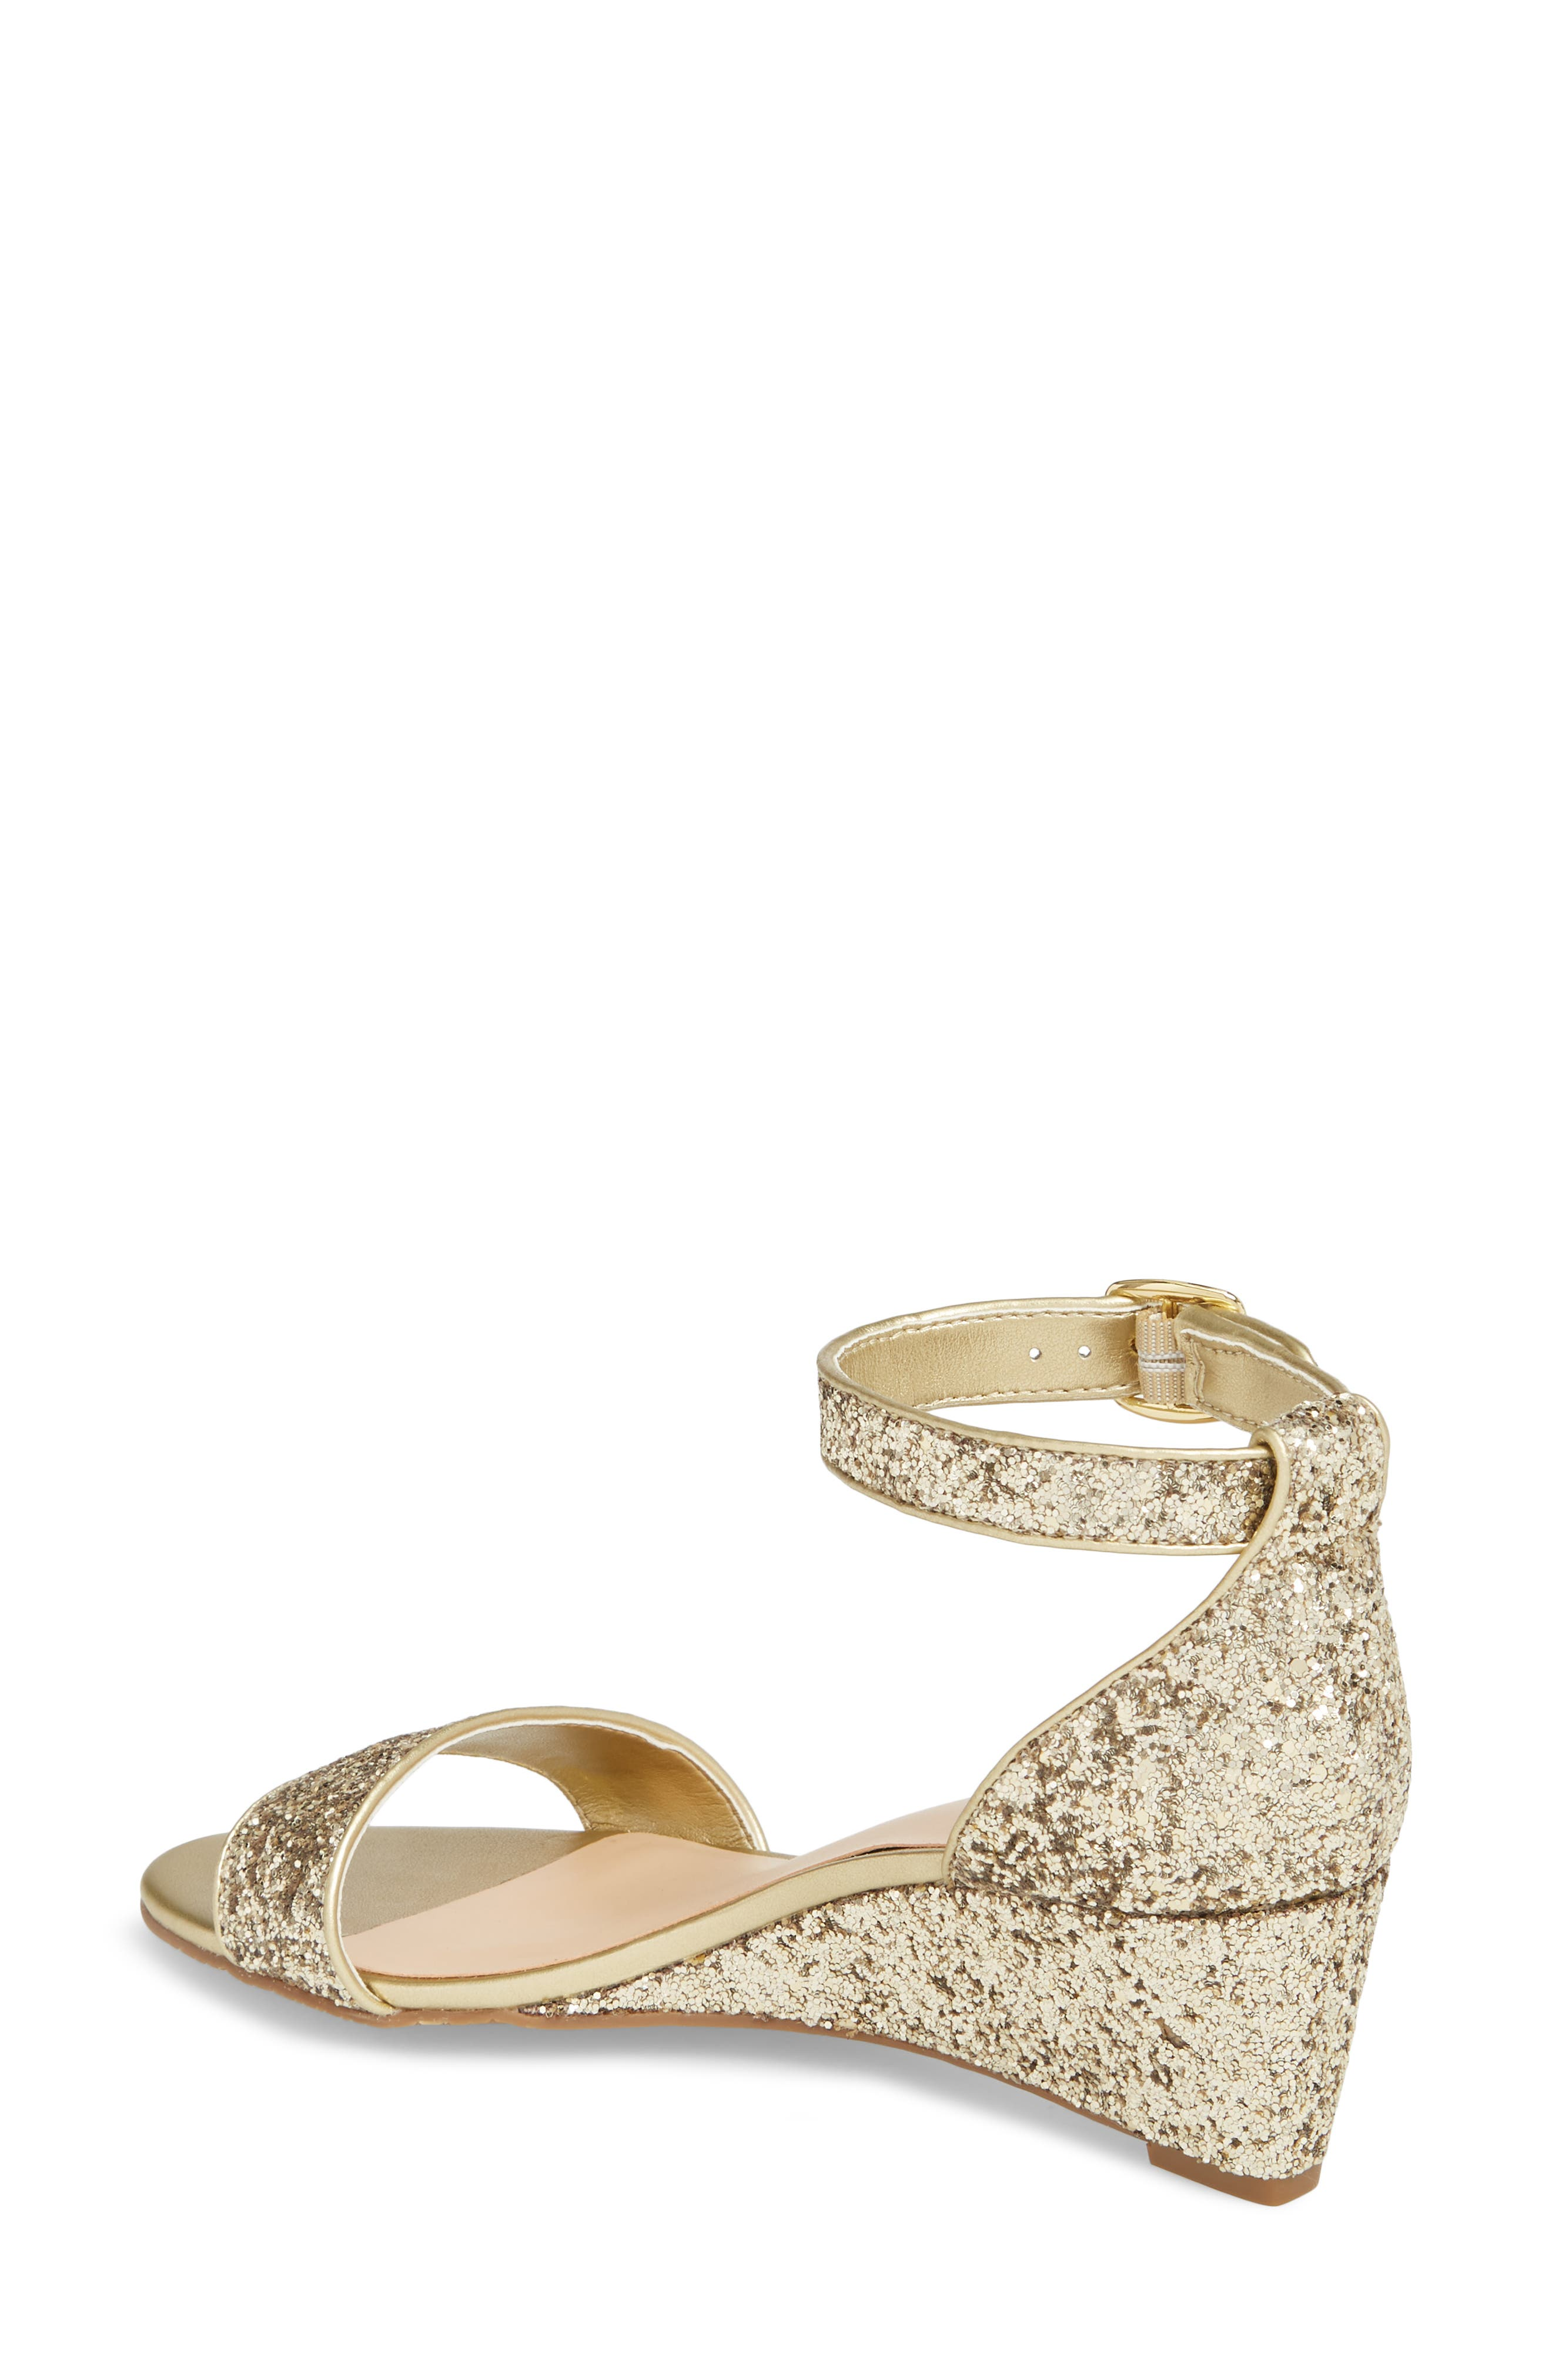 'Roxie' Wedge Sandal,                             Alternate thumbnail 2, color,                             GOLD GLITTER